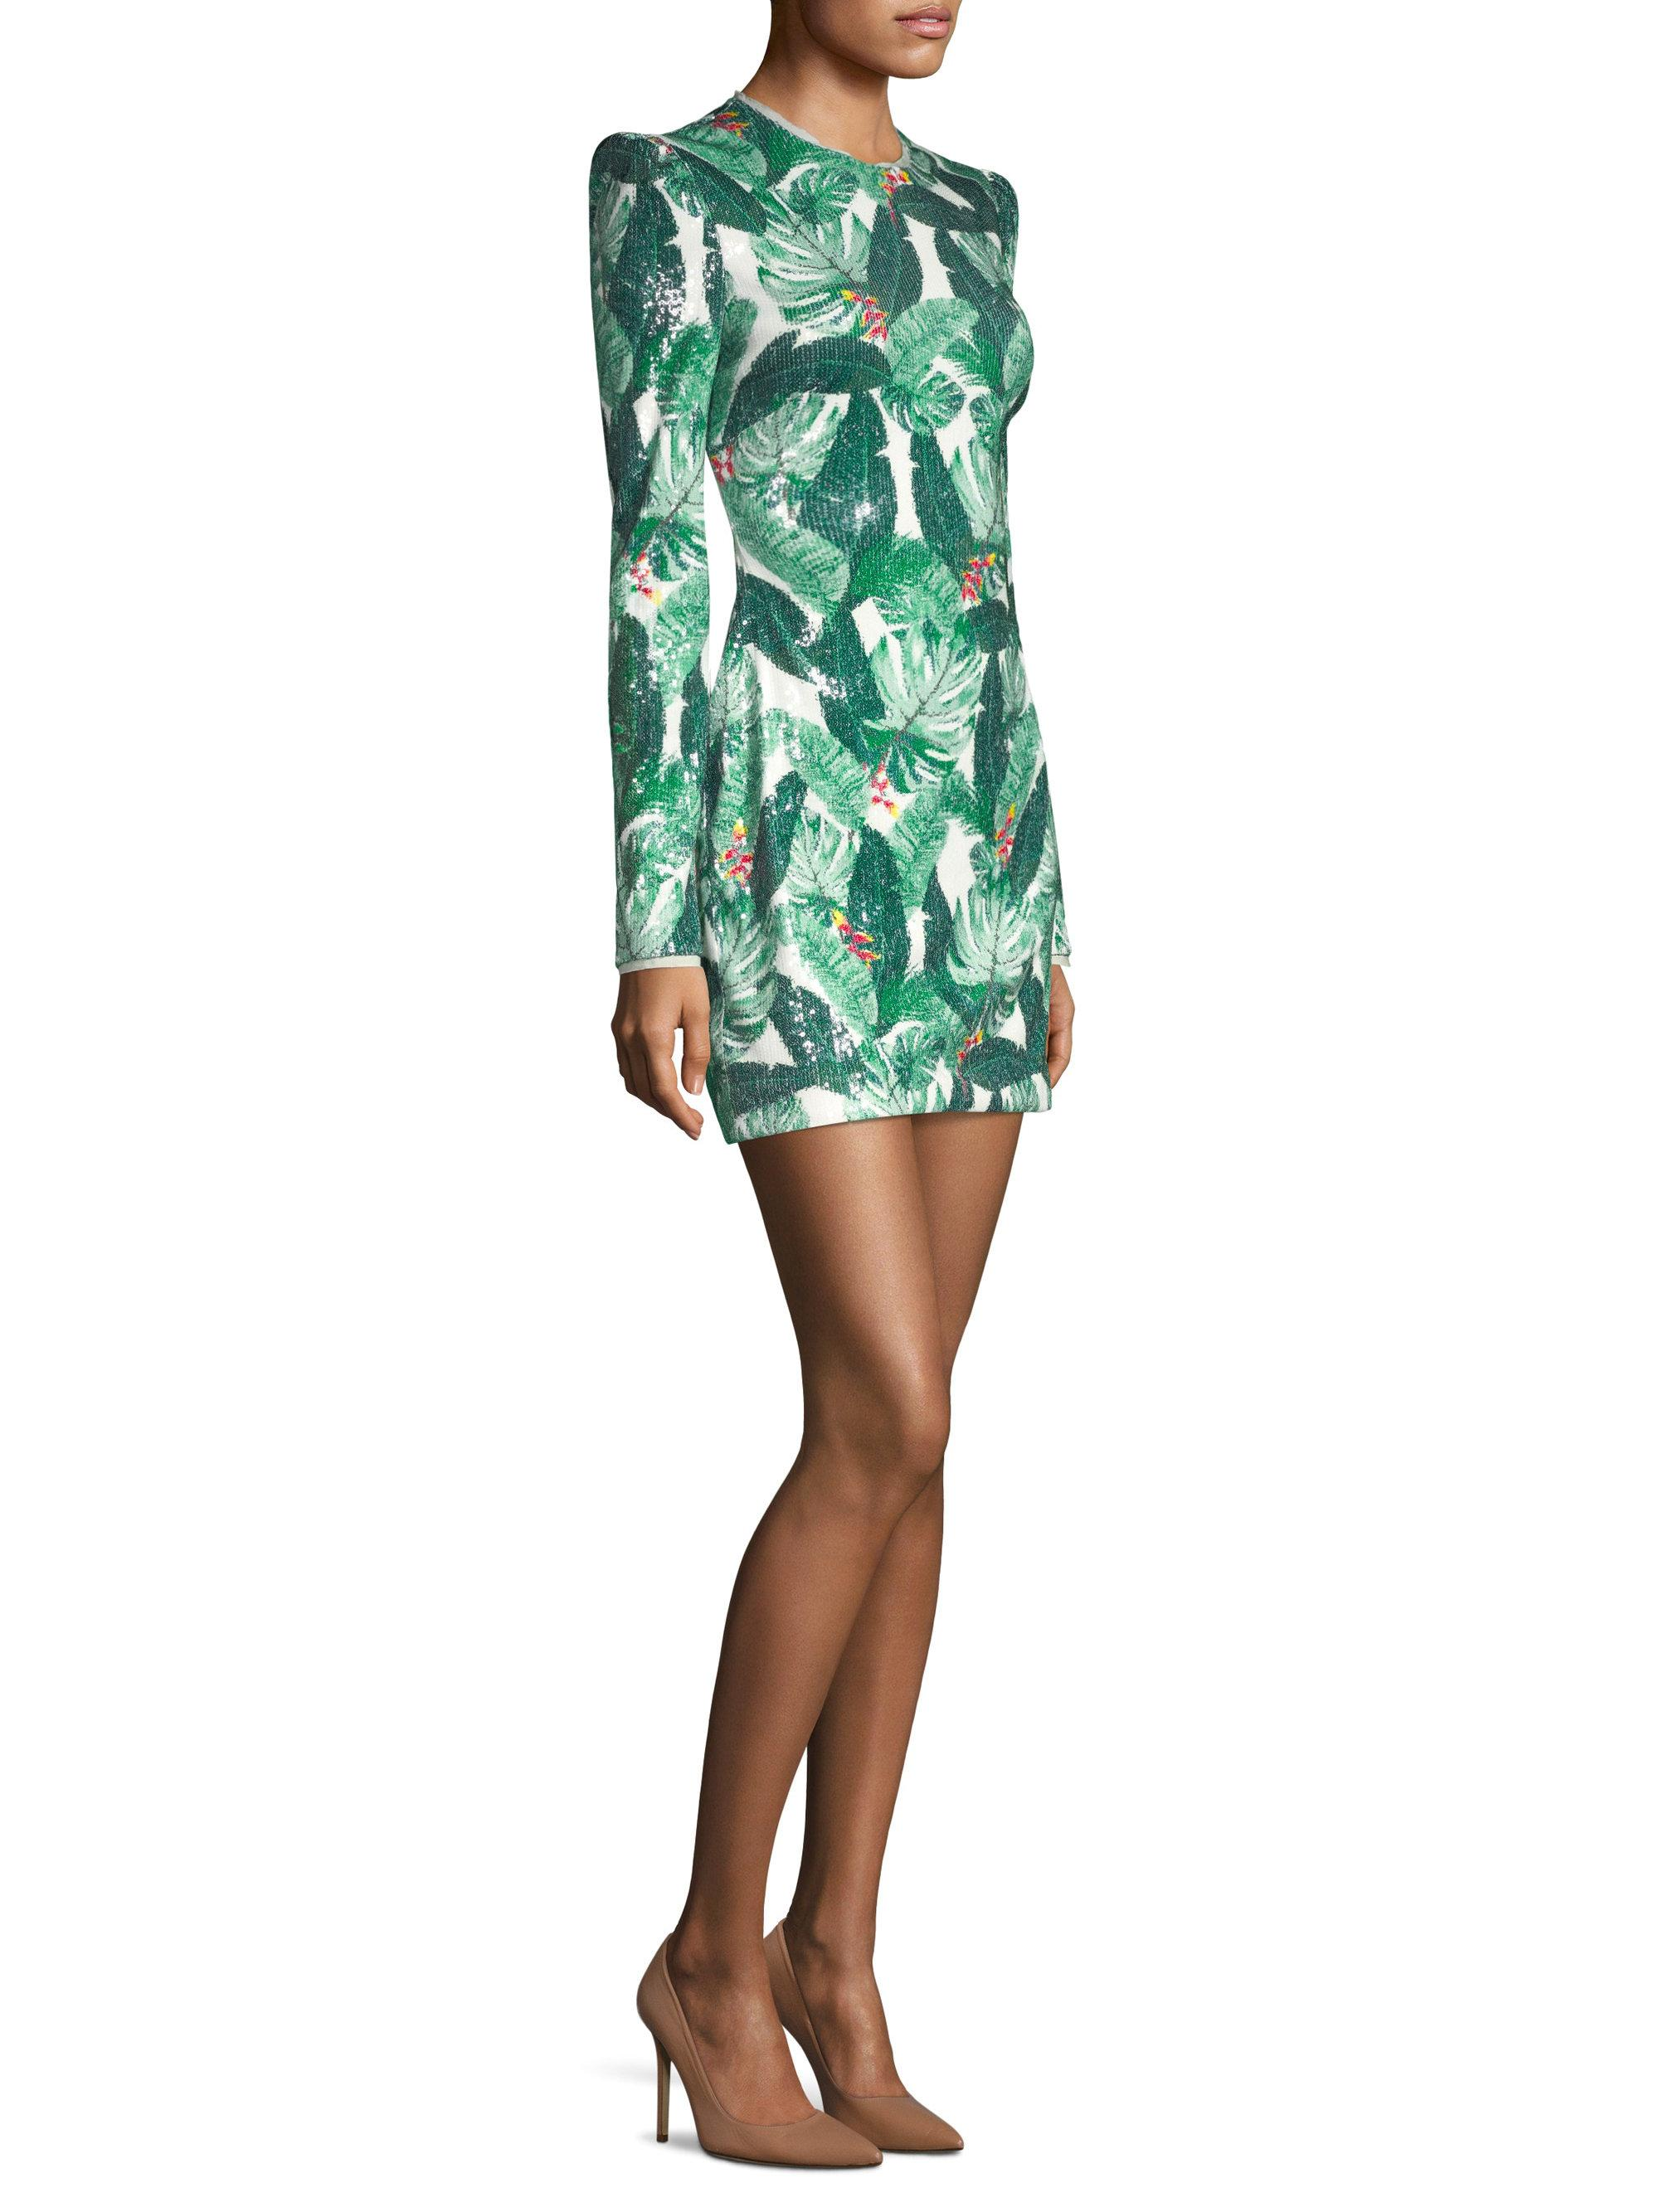 Amelia Sequined Crepe Mini Dress - Green Rachel Zoe Limited Edition Online Clearance Inexpensive Clearance 2018 New Cheap Shop Offer ZhTqqoaA5